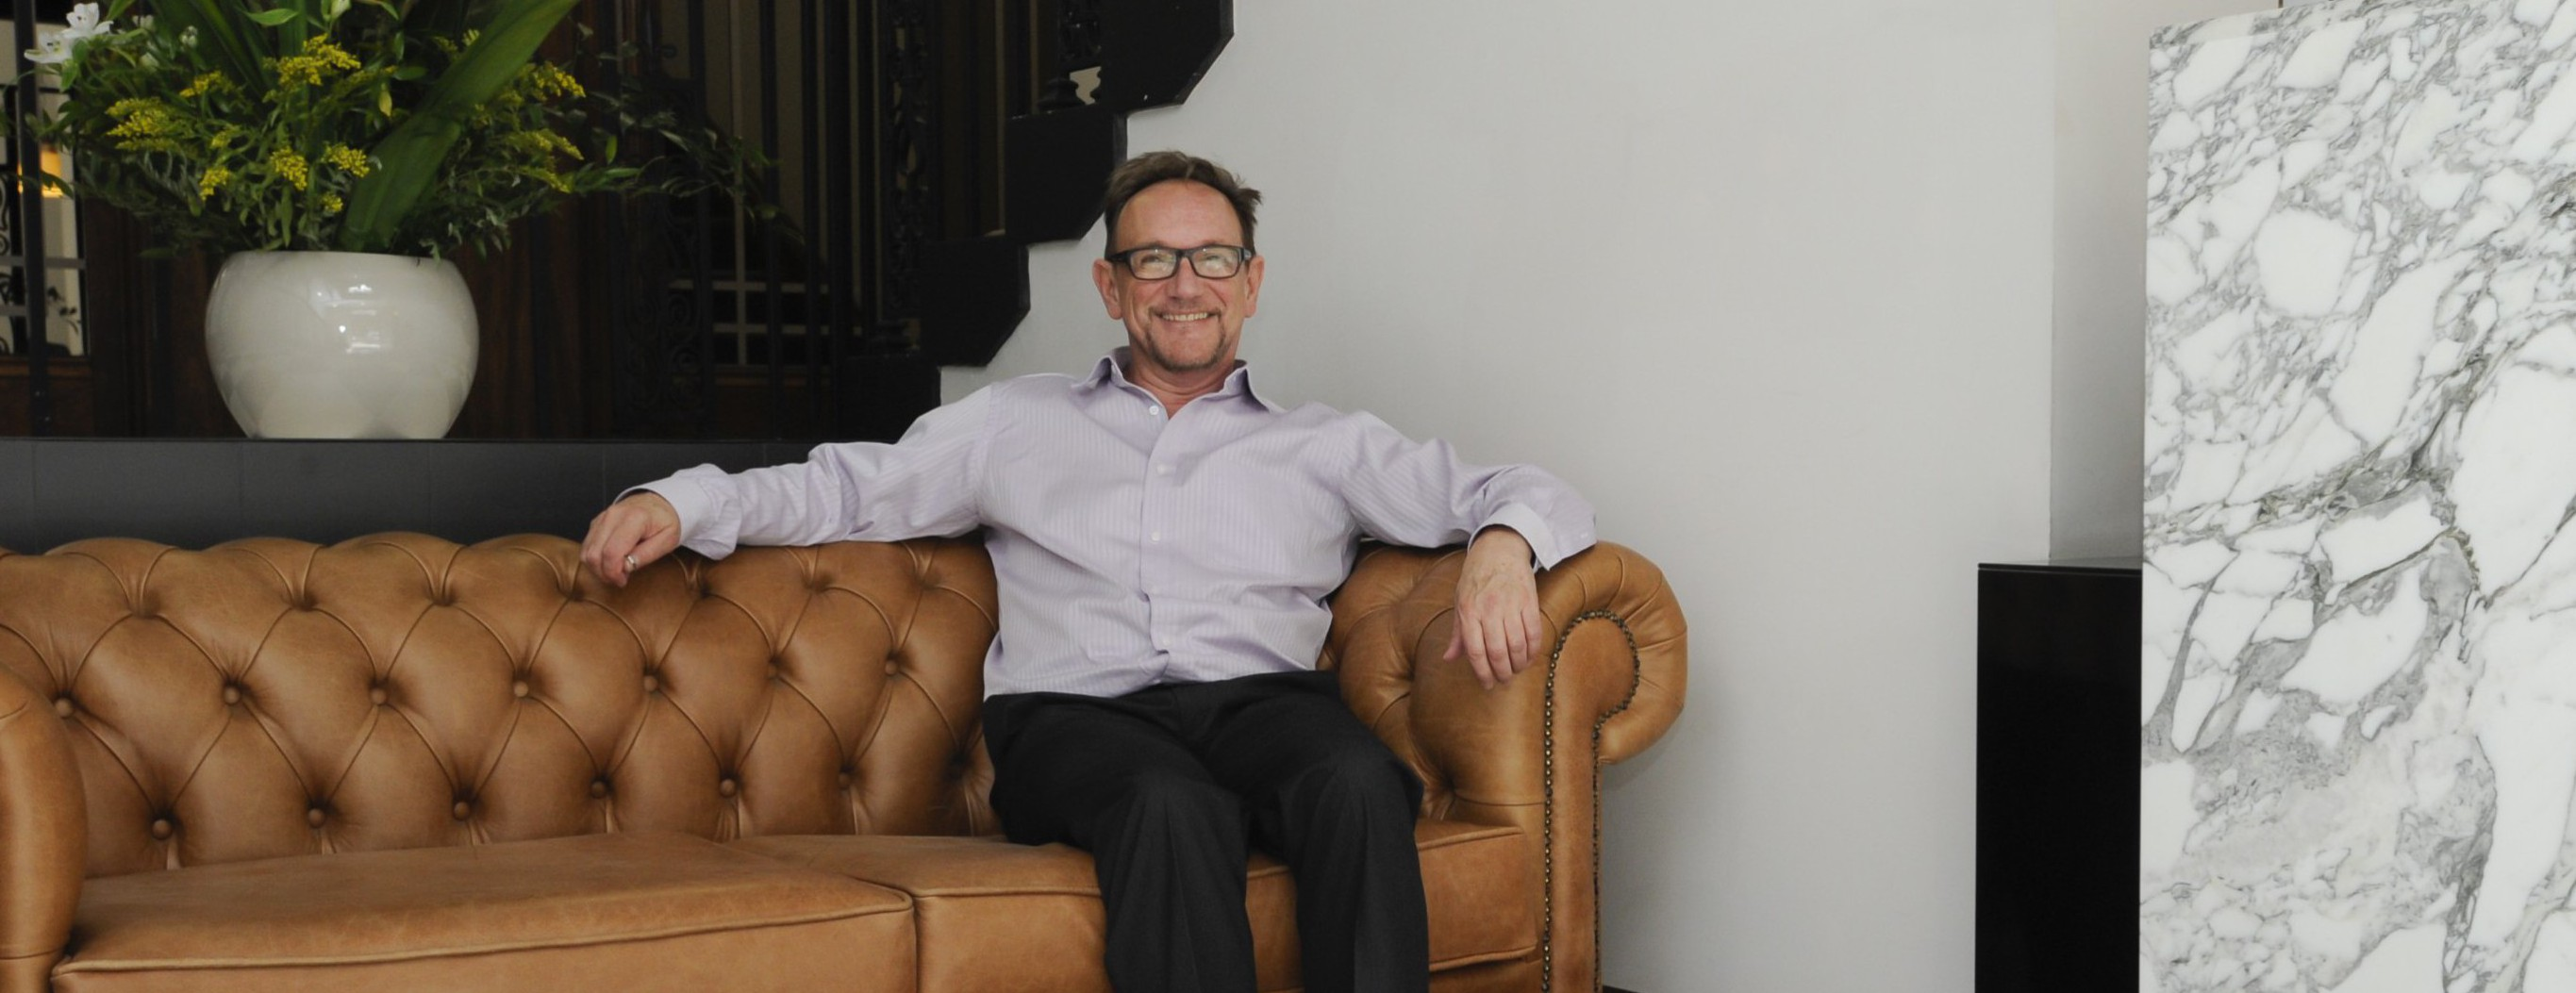 NDA interviews Nicholas Sunderland of NSinteriors Photo by Beccy Smart Photography.